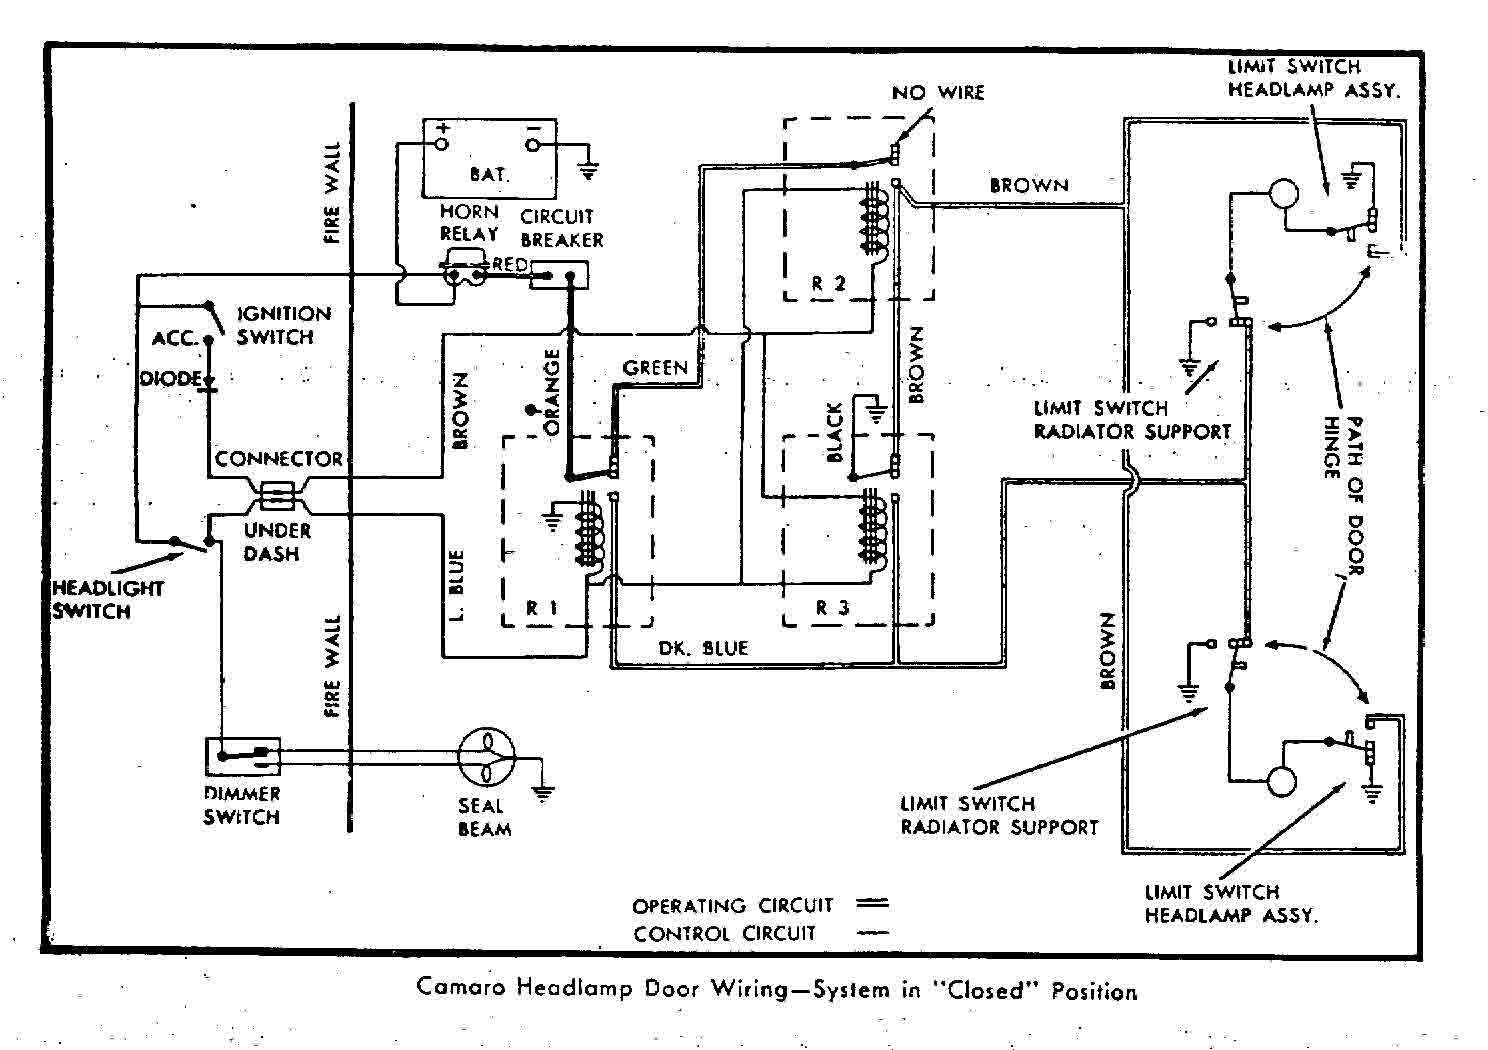 67rswire2 67 camaro wiring diagram 67 camaro cluster wiring diagram \u2022 wiring 1967 chevelle wiring diagram pdf at reclaimingppi.co